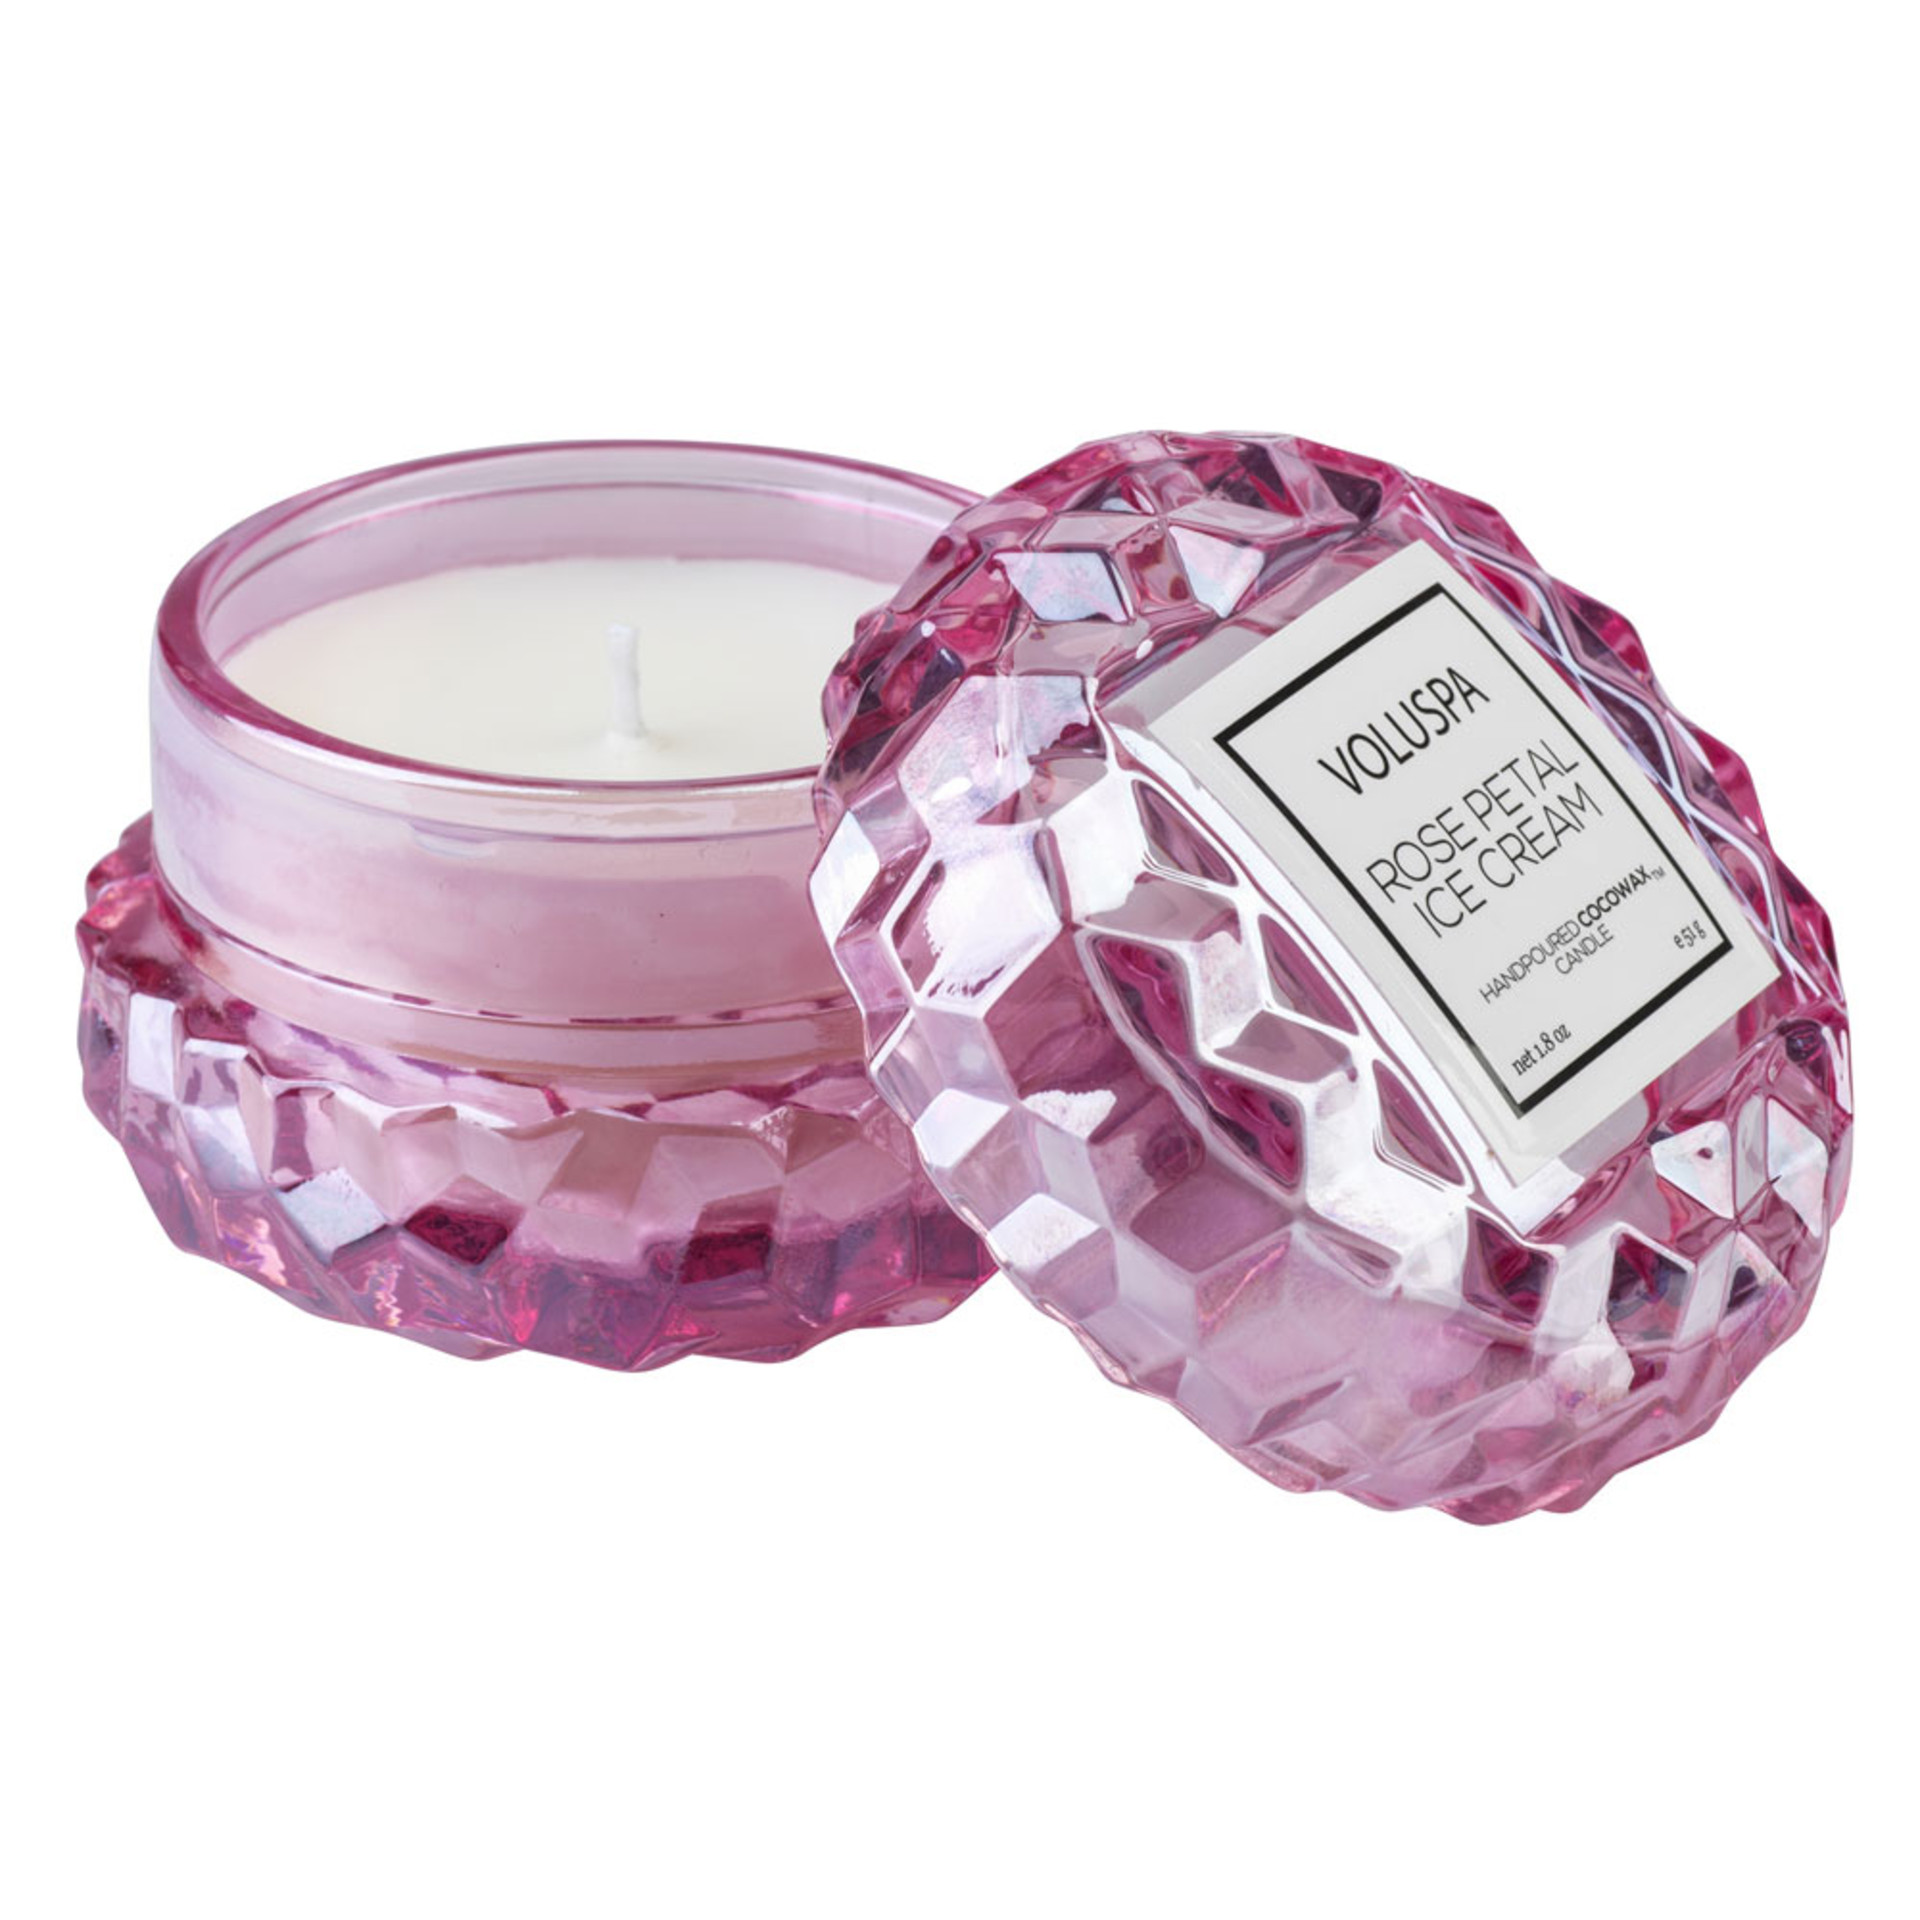 Voluspa Candle Rose Petal Ice Cream